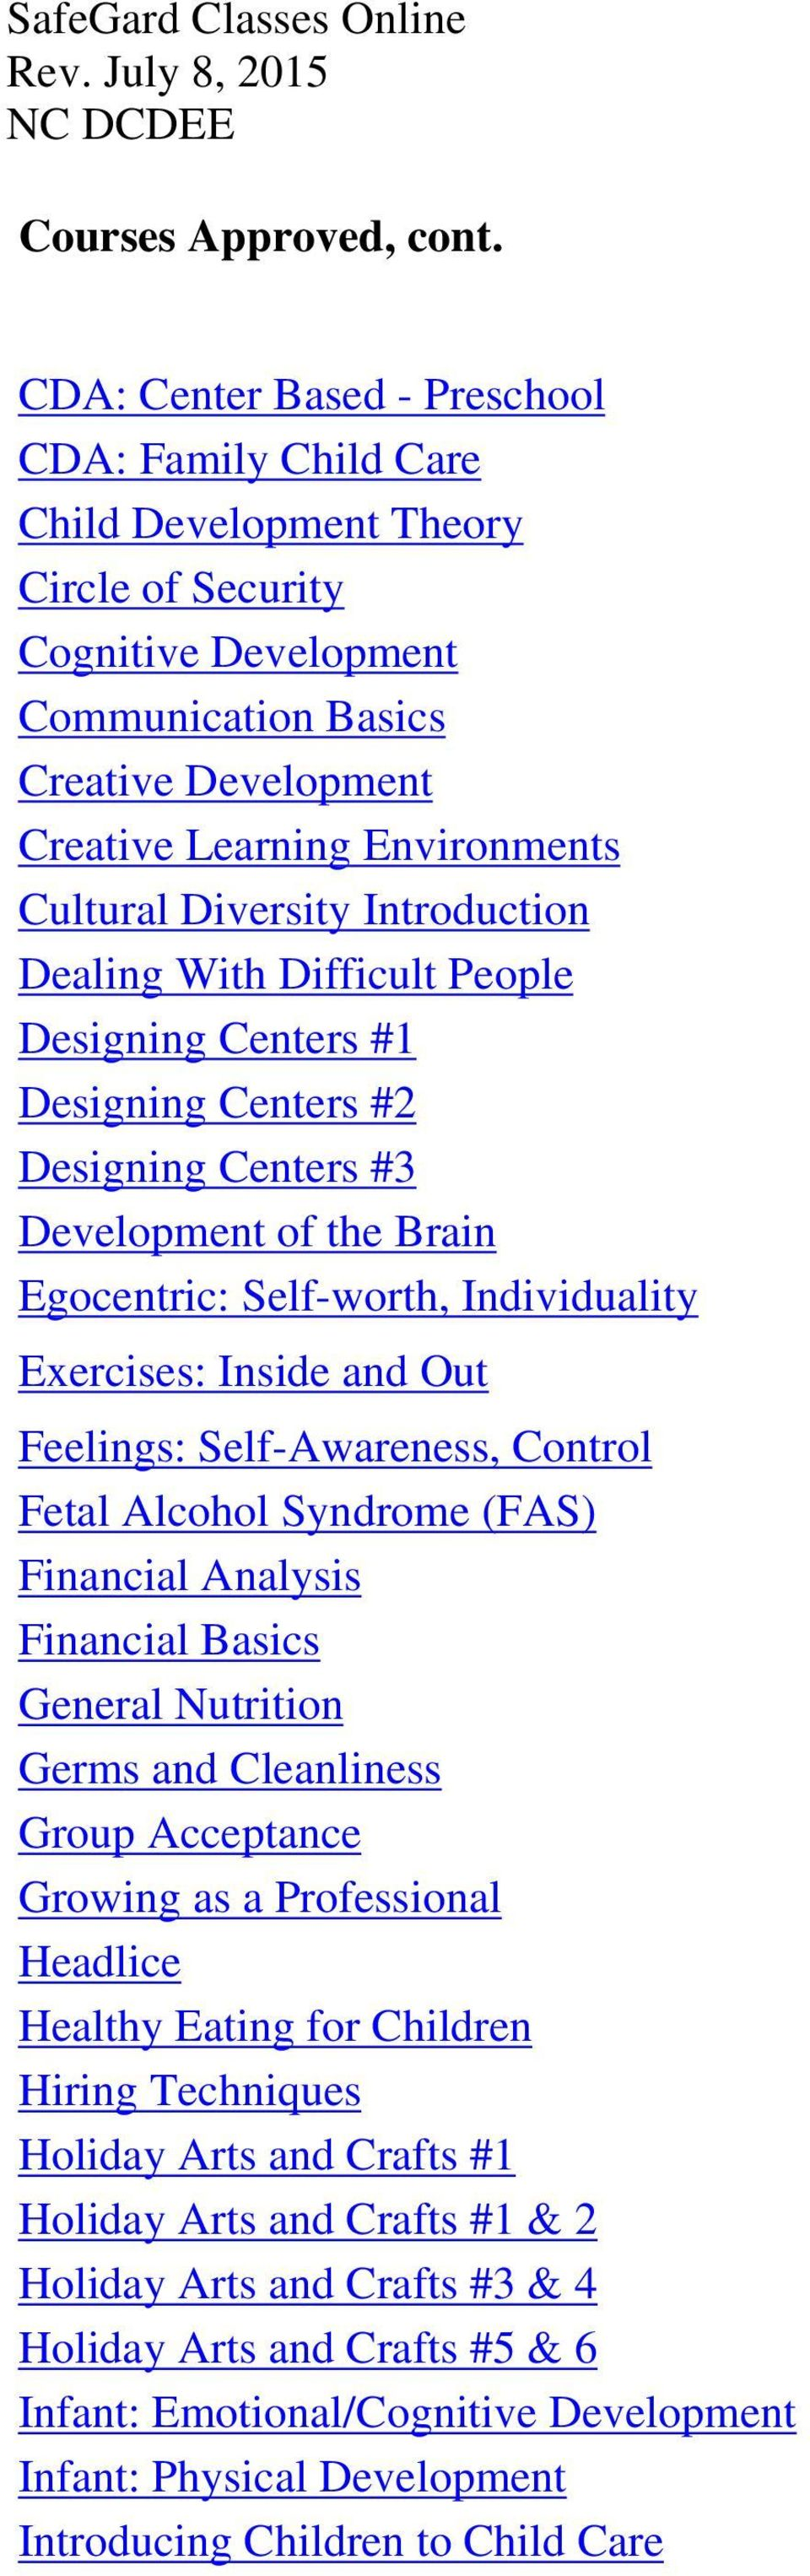 Inside and Out Feelings: Self-Awareness, Control Fetal Alcohol Syndrome (FAS) Financial Analysis Financial Basics General Nutrition Germs and Cleanliness Group Acceptance Growing as a Professional